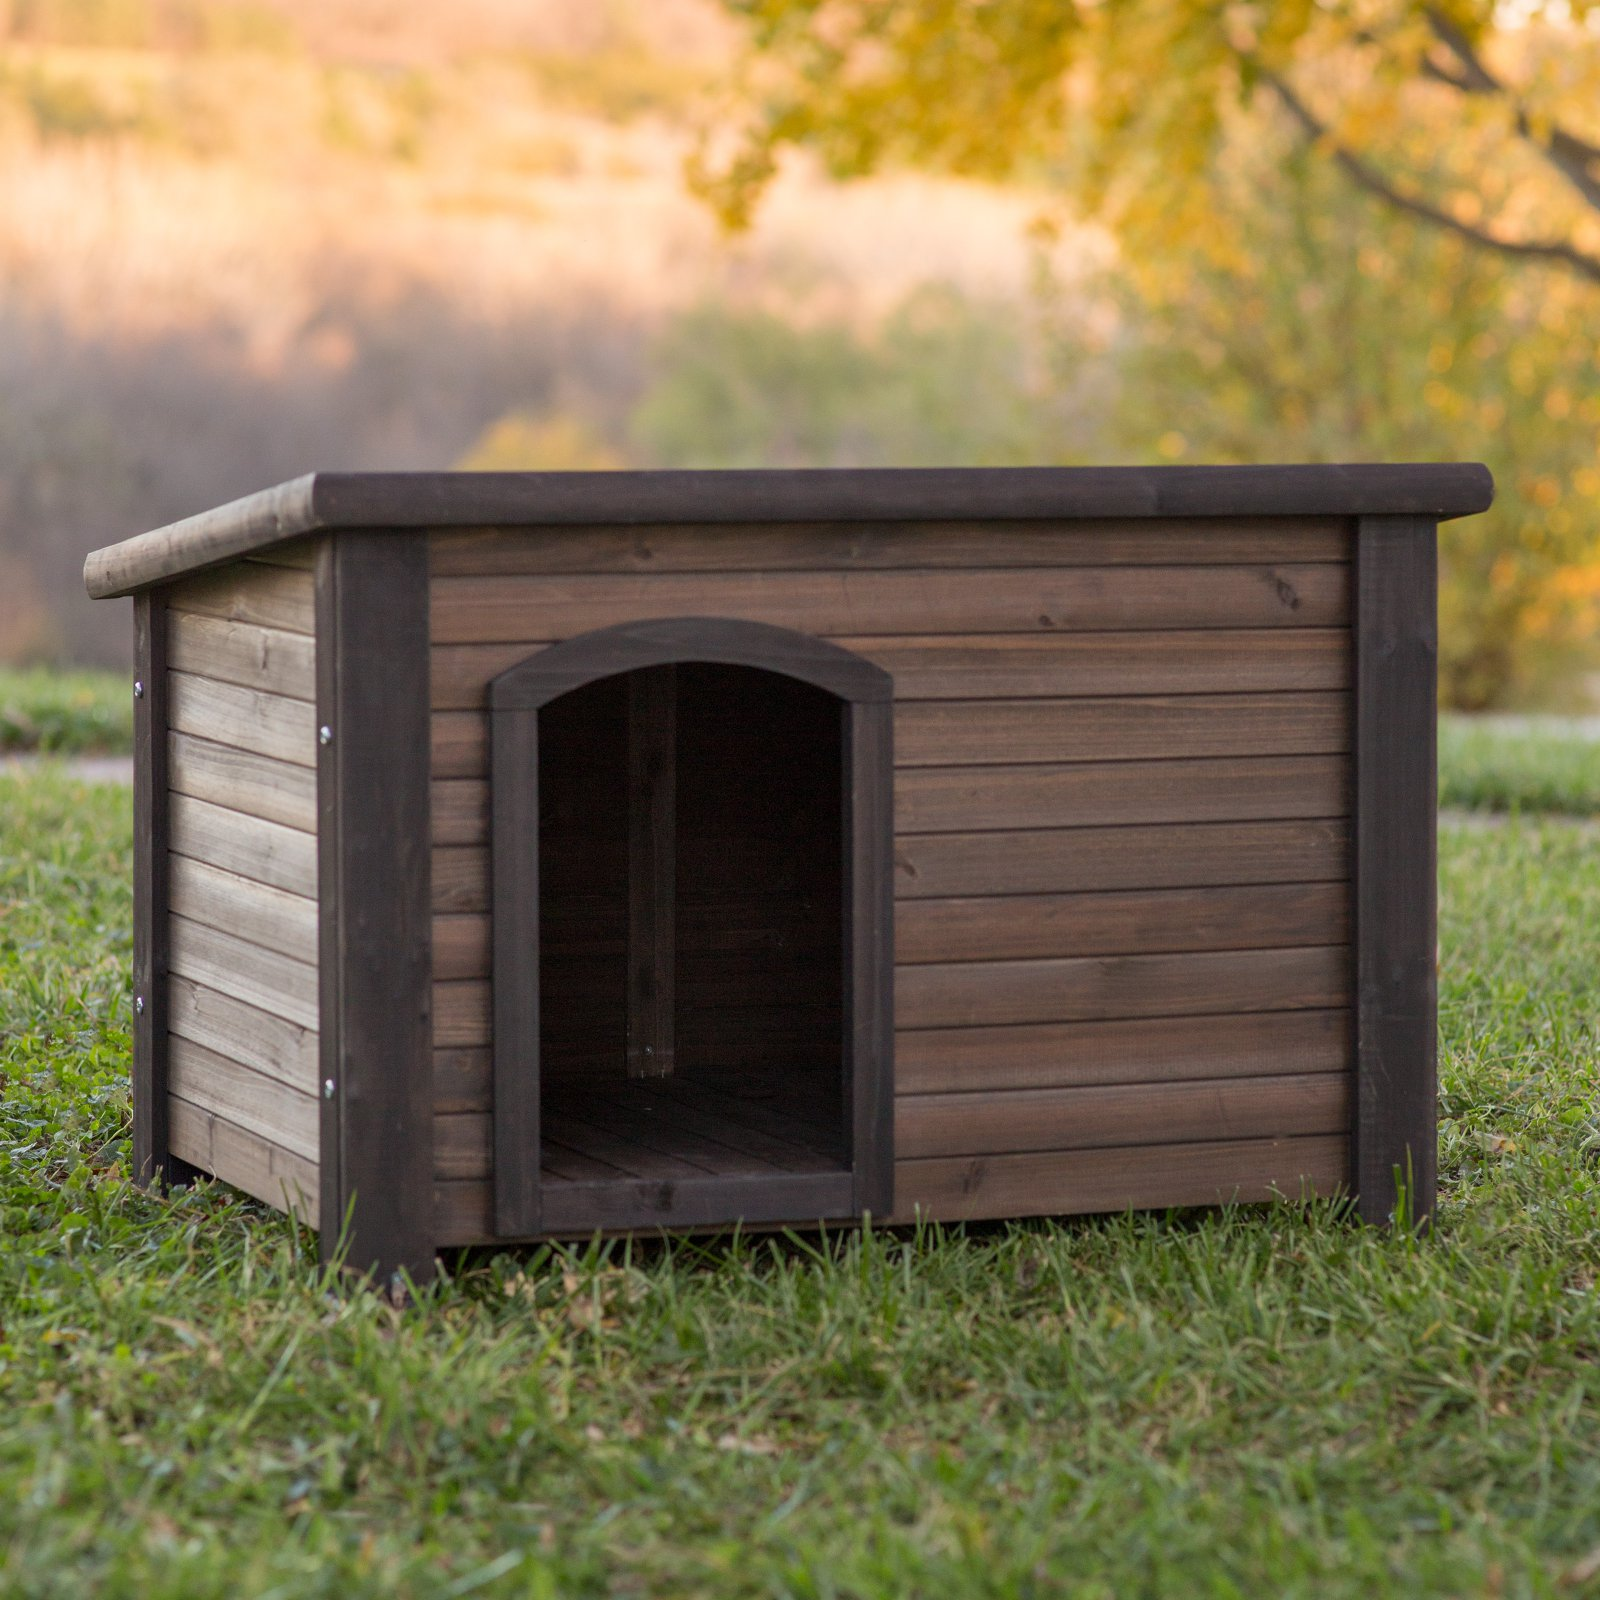 Boomer & George Dog House with Stainless Steel Bowls